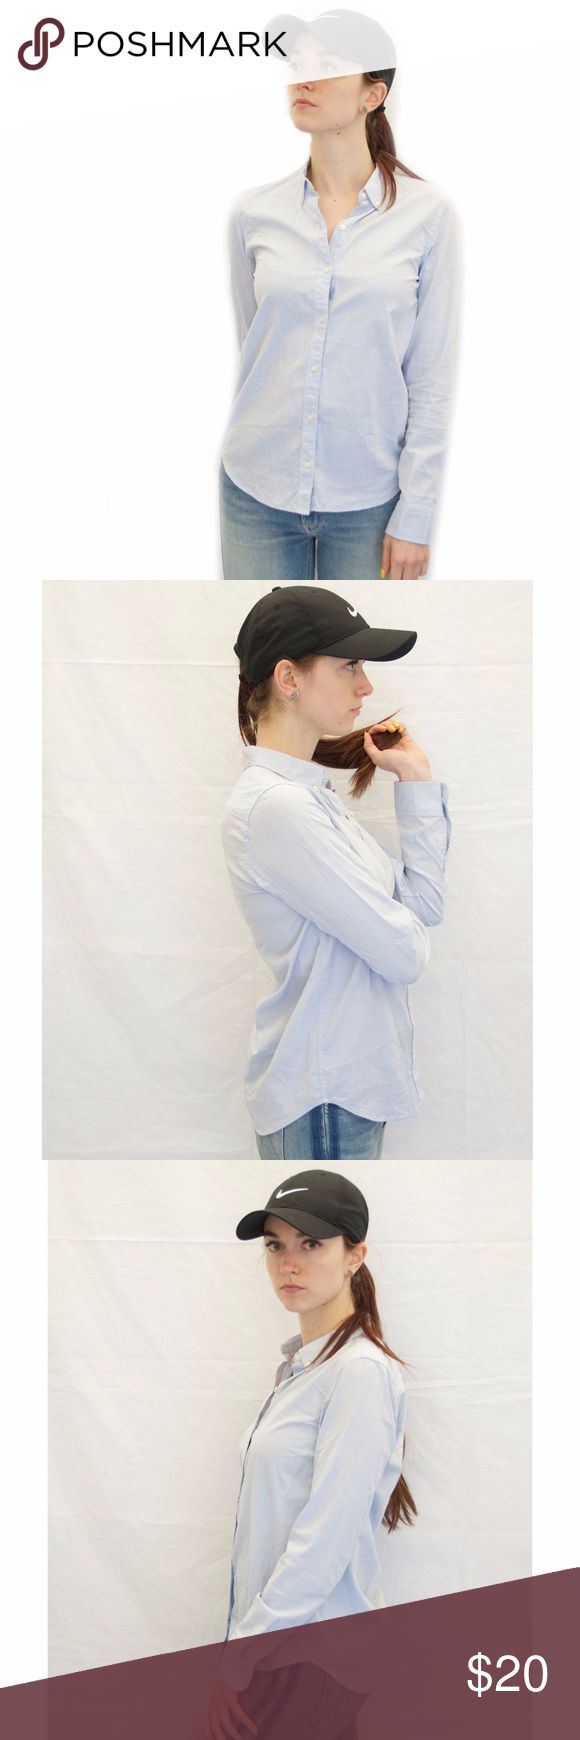 GAP Light Blue Button Down Oxford Shirt Great basic light blue oxford for women! In excellent preowned condition, with no sign of wear or defects. Fabric isn't too light nor too heavy; it has a nice weight to it. Feel free to make an offer :) GAP Tops Button Down Shirts